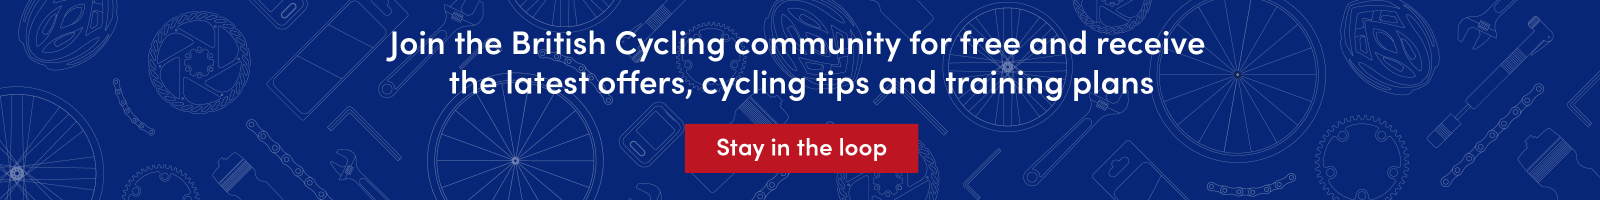 Become a British Cycling member